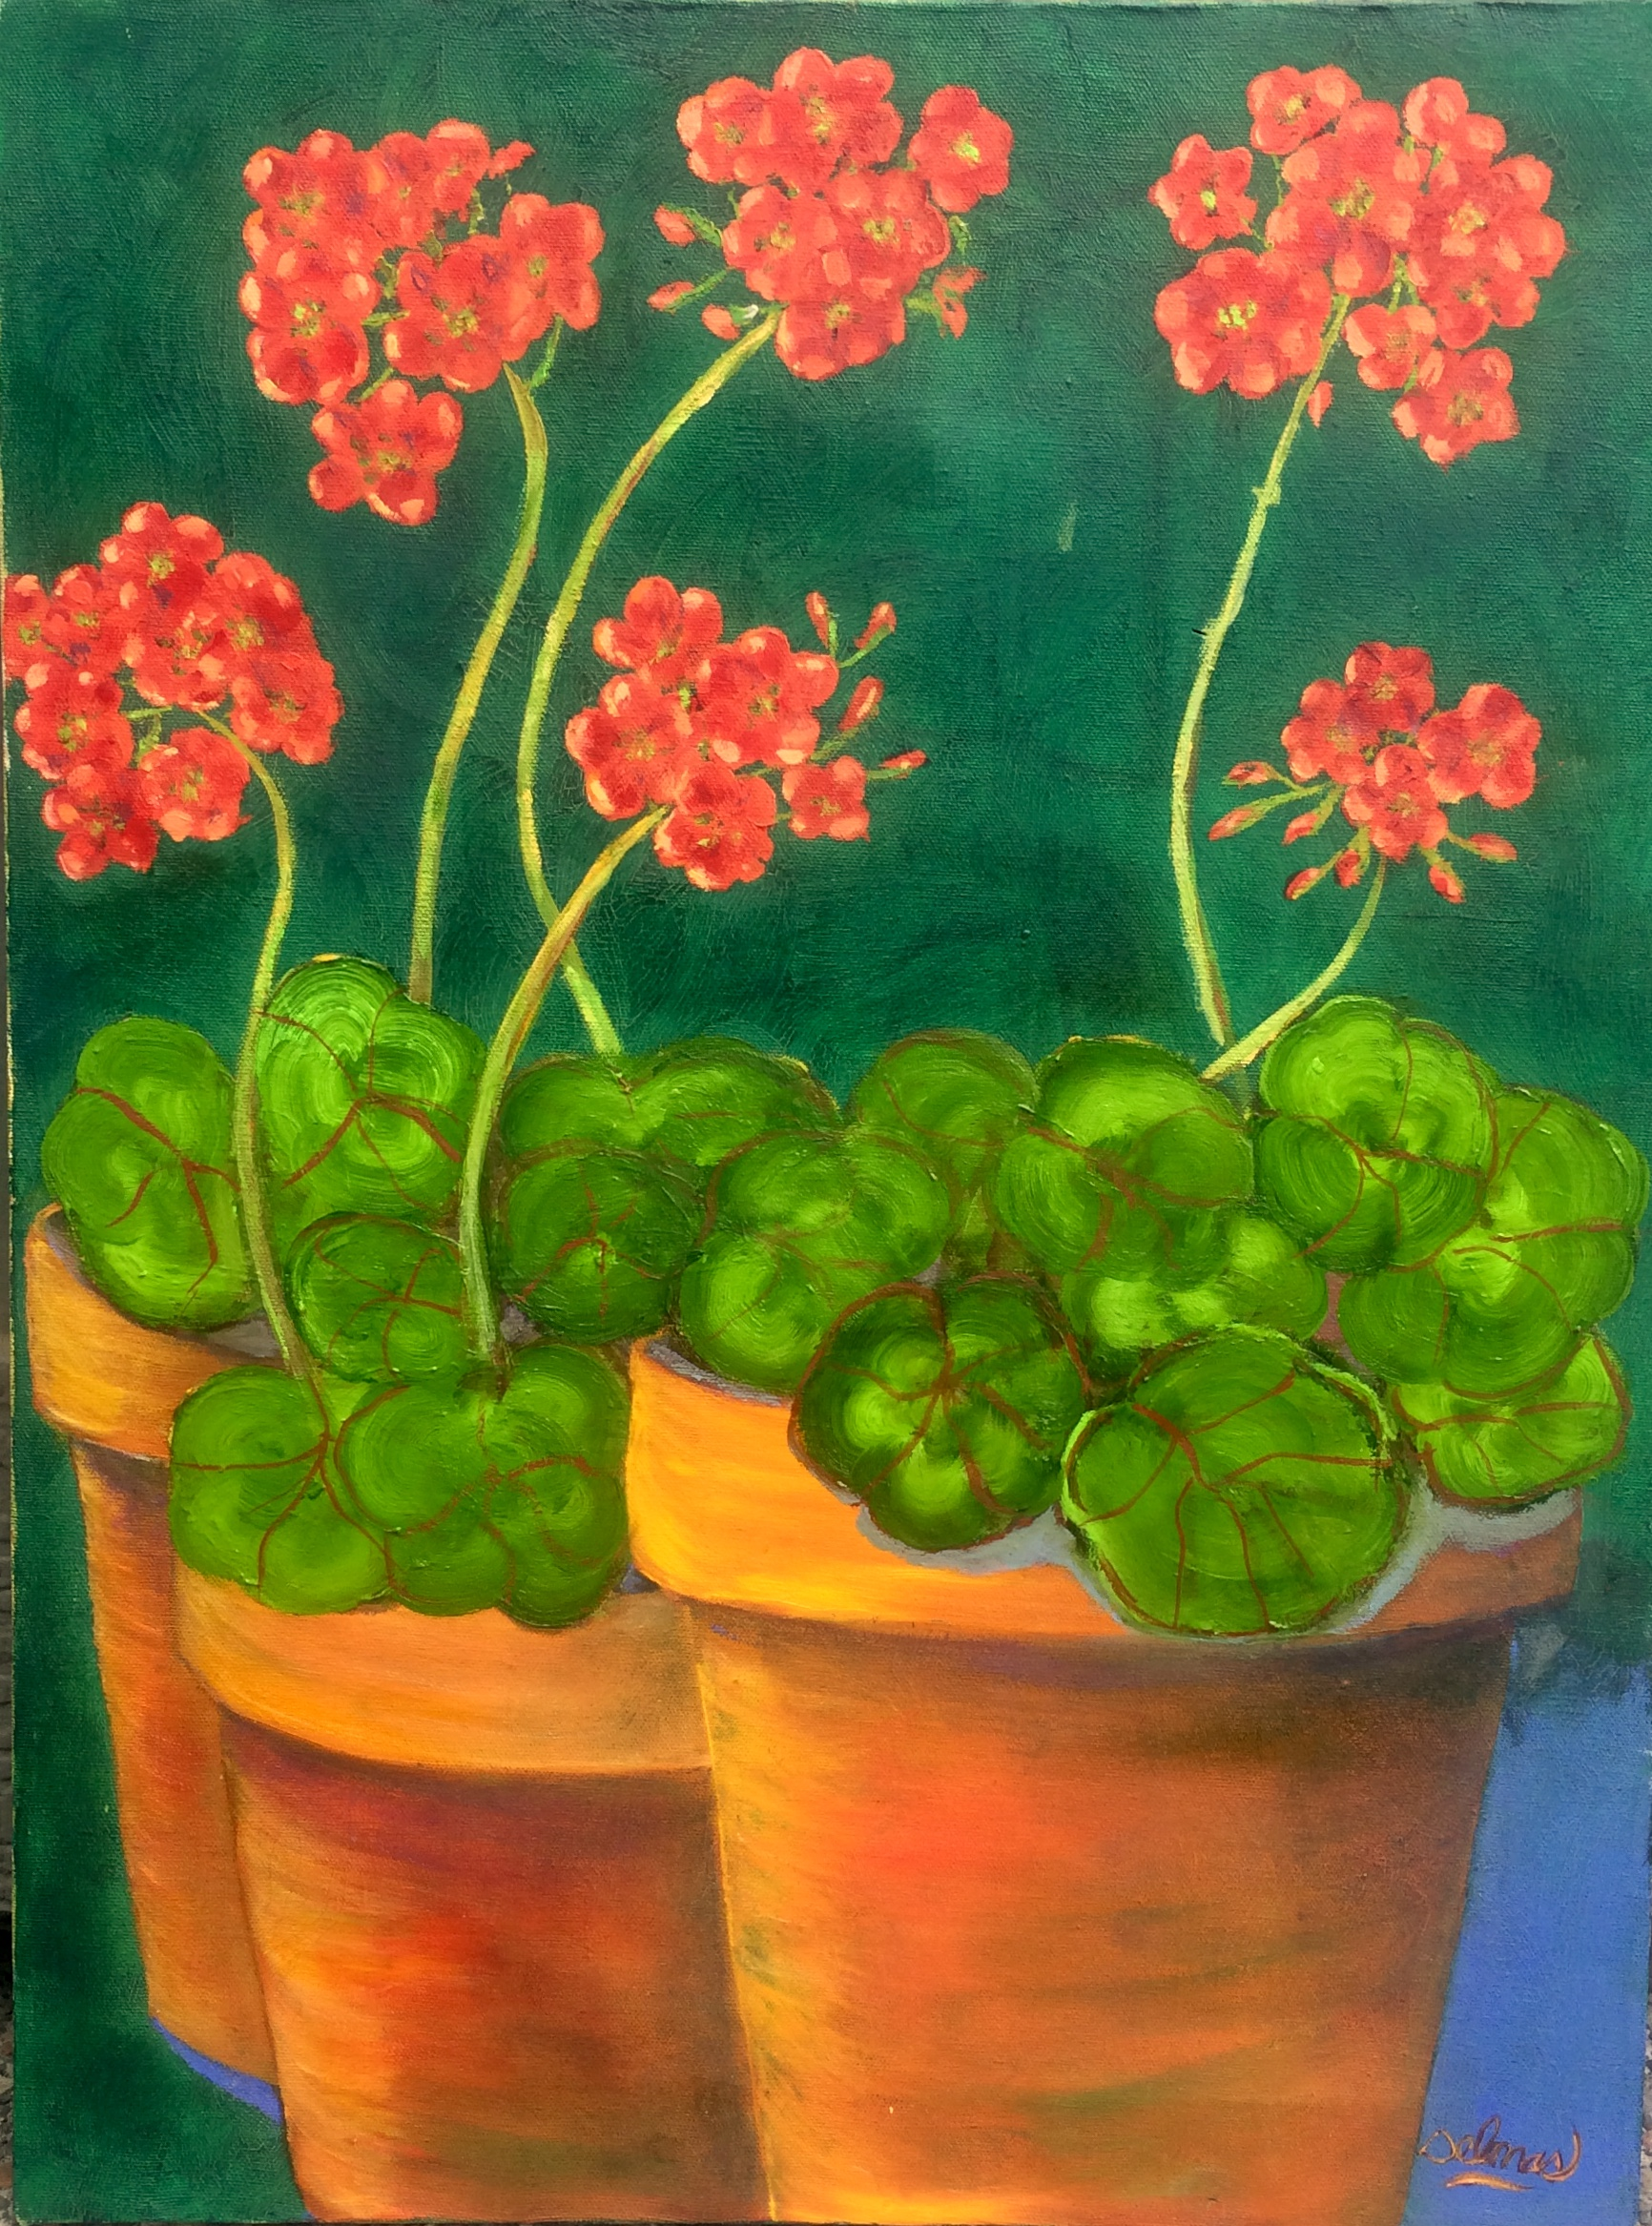 Geraniums in Clay Pots - 18 x 24 - Oil on Canvas - $375